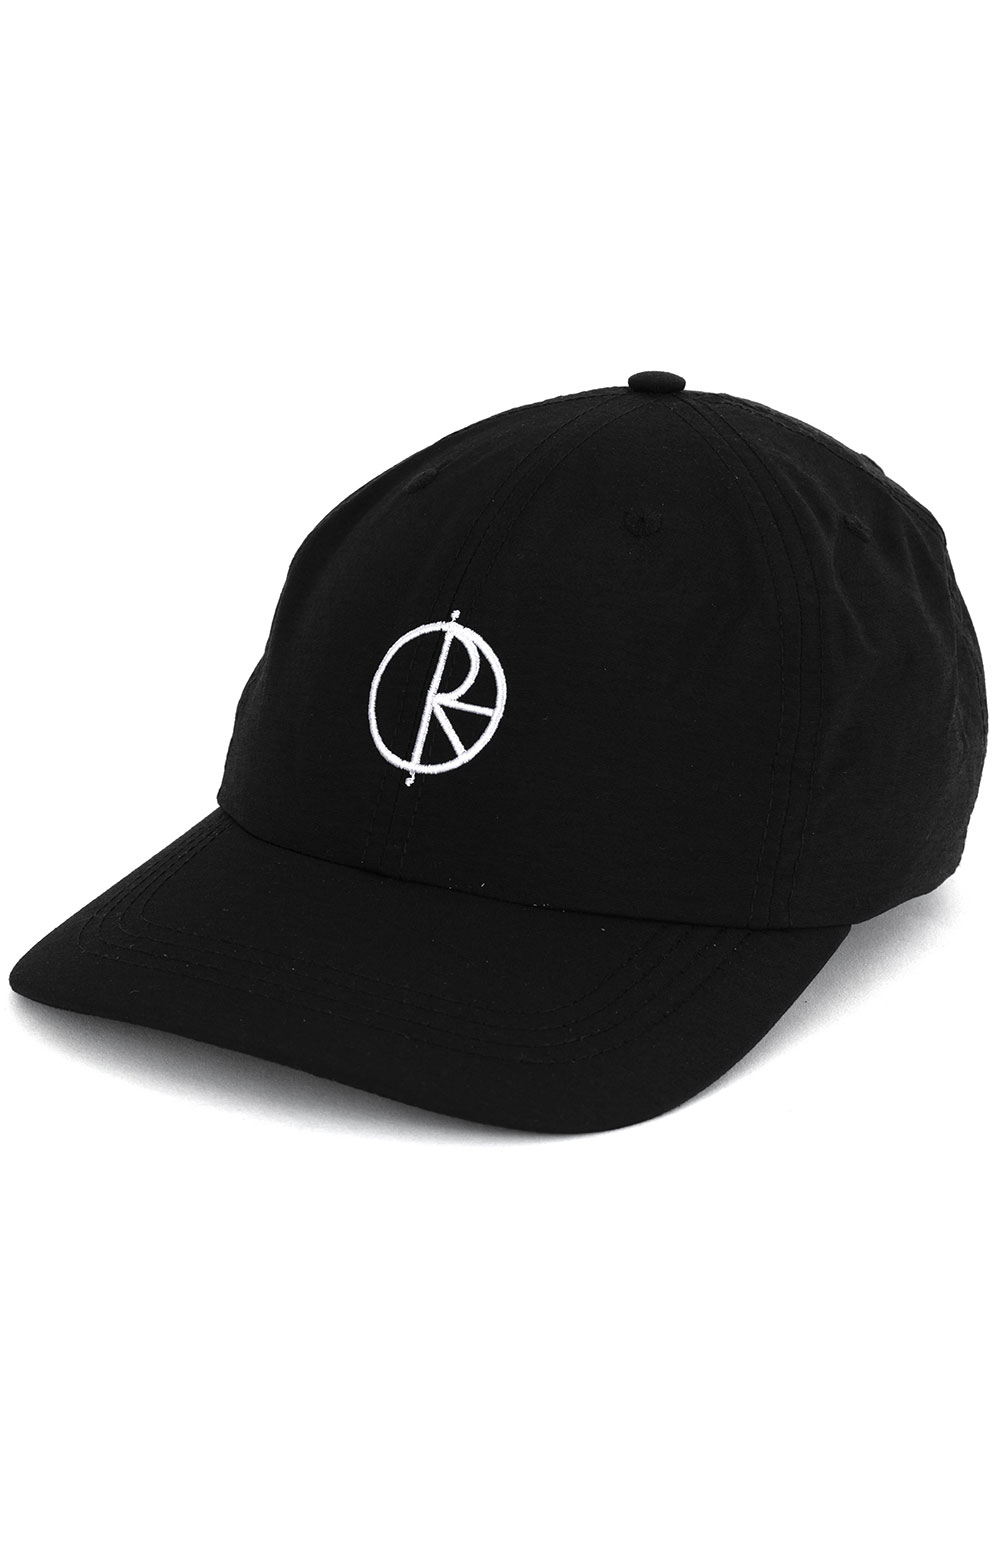 Lightweight Strap-Back Cap - Black